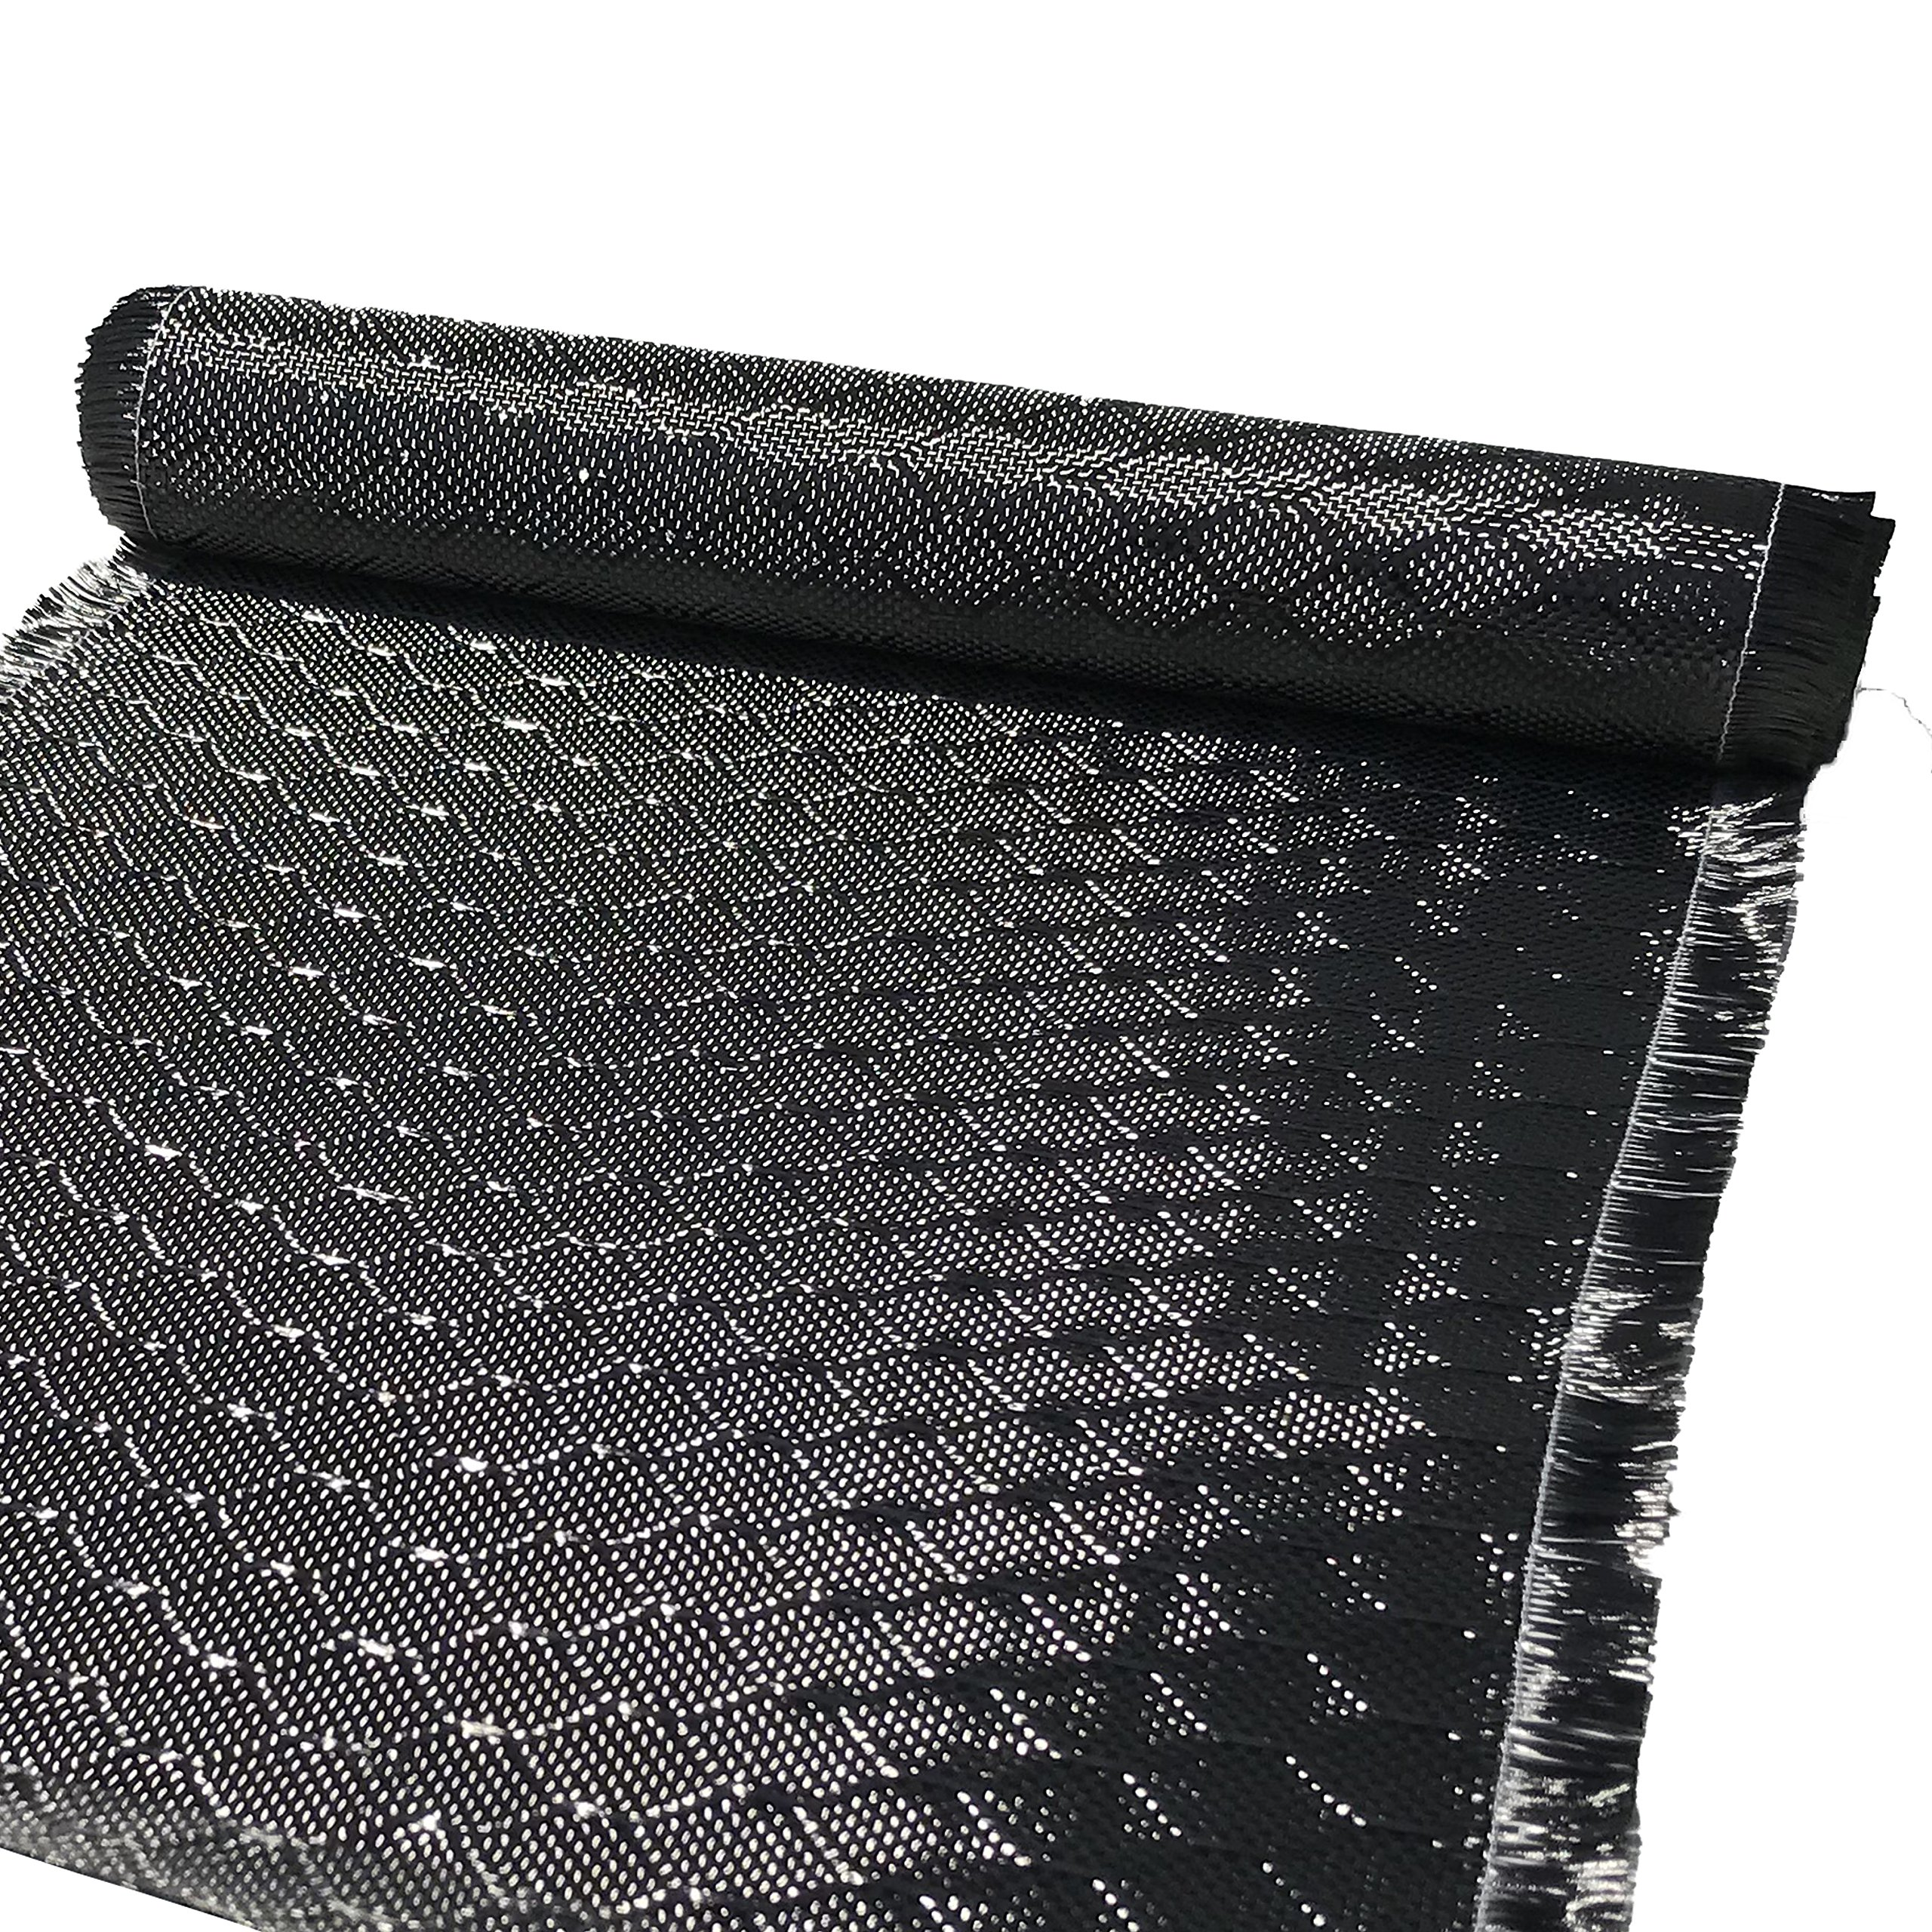 12 in x 5 FT - WASP - Carbon Fiber Fabric - Wasp Weave-3K - 220g-Black by CARBON KEVLAR SUPPLY (Image #6)